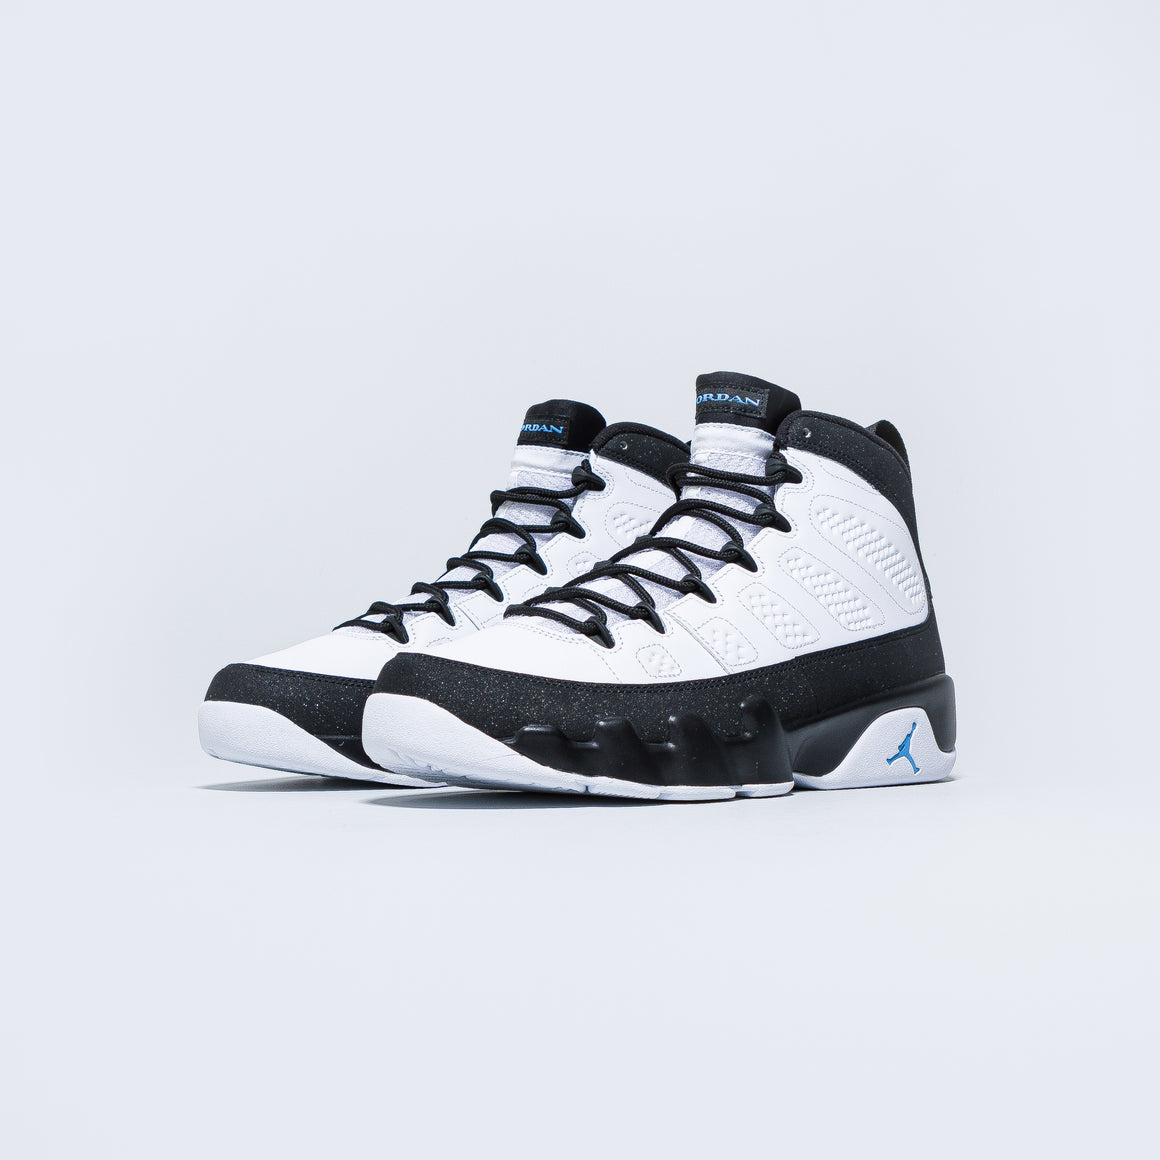 Jordan - Air Jordan 9 Retro - White/University Blue-Black - Up There